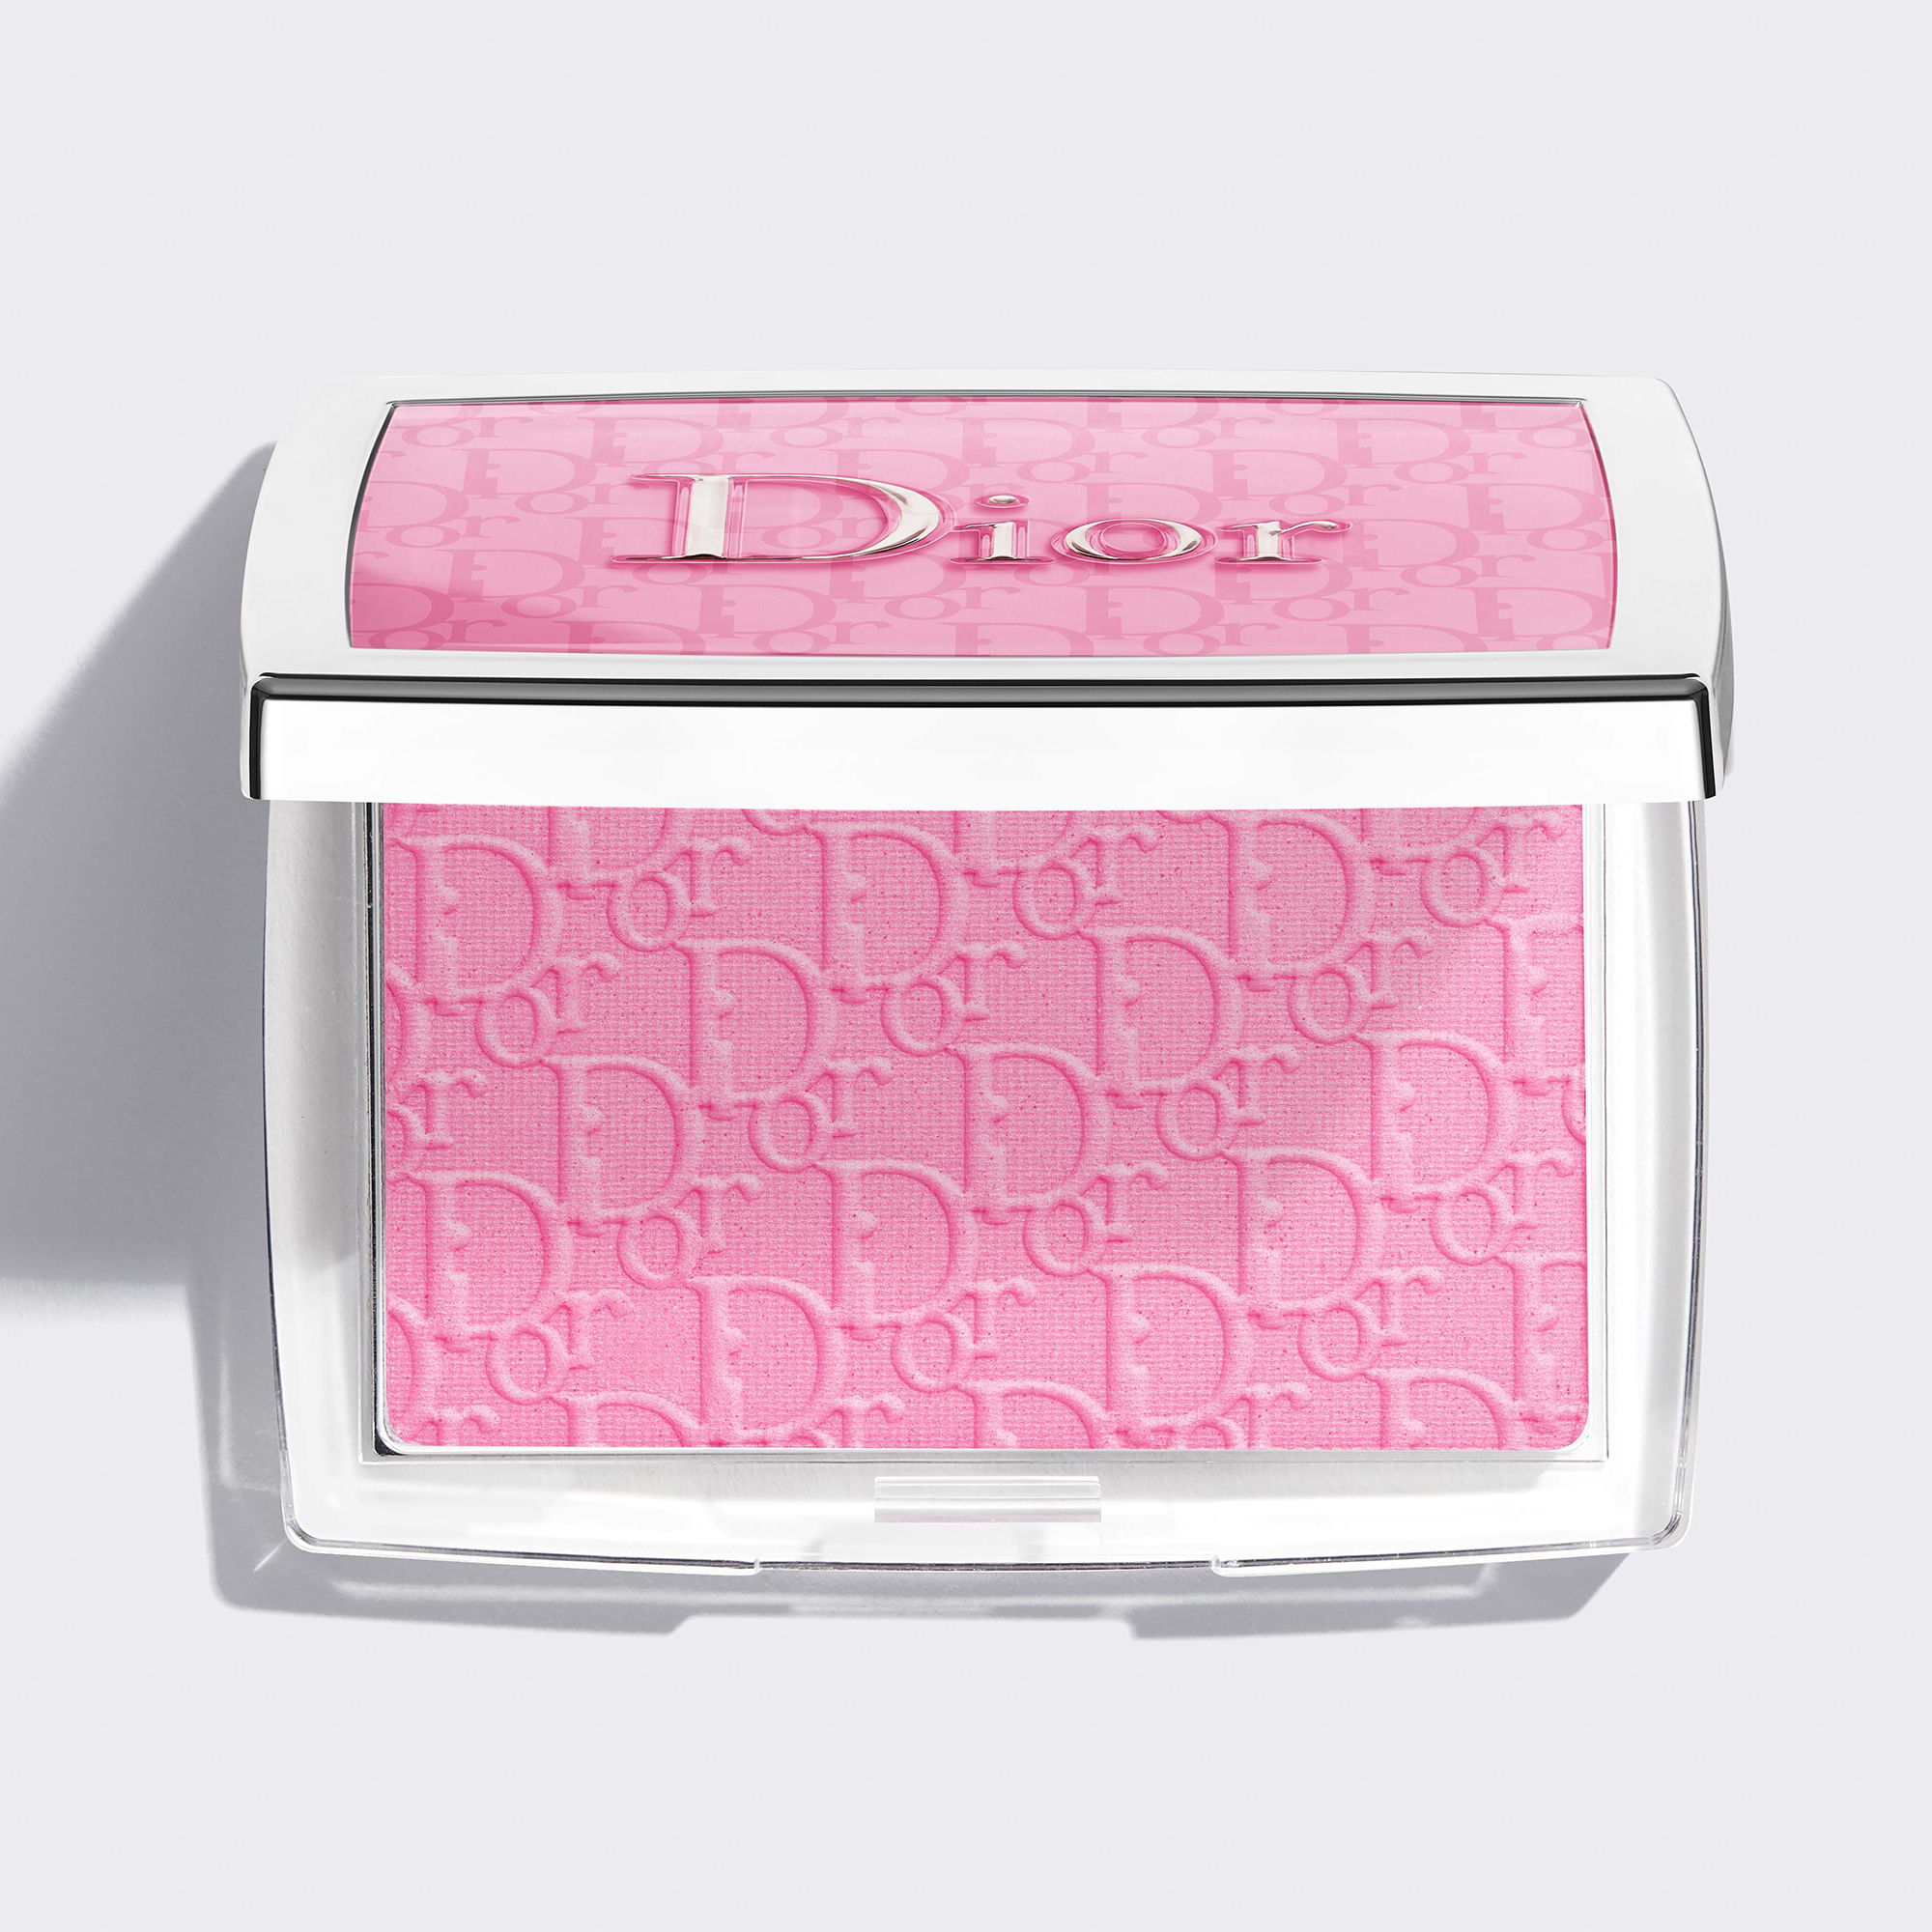 Dior 001 Pink Backstage Rosy Glow Blush Dupes